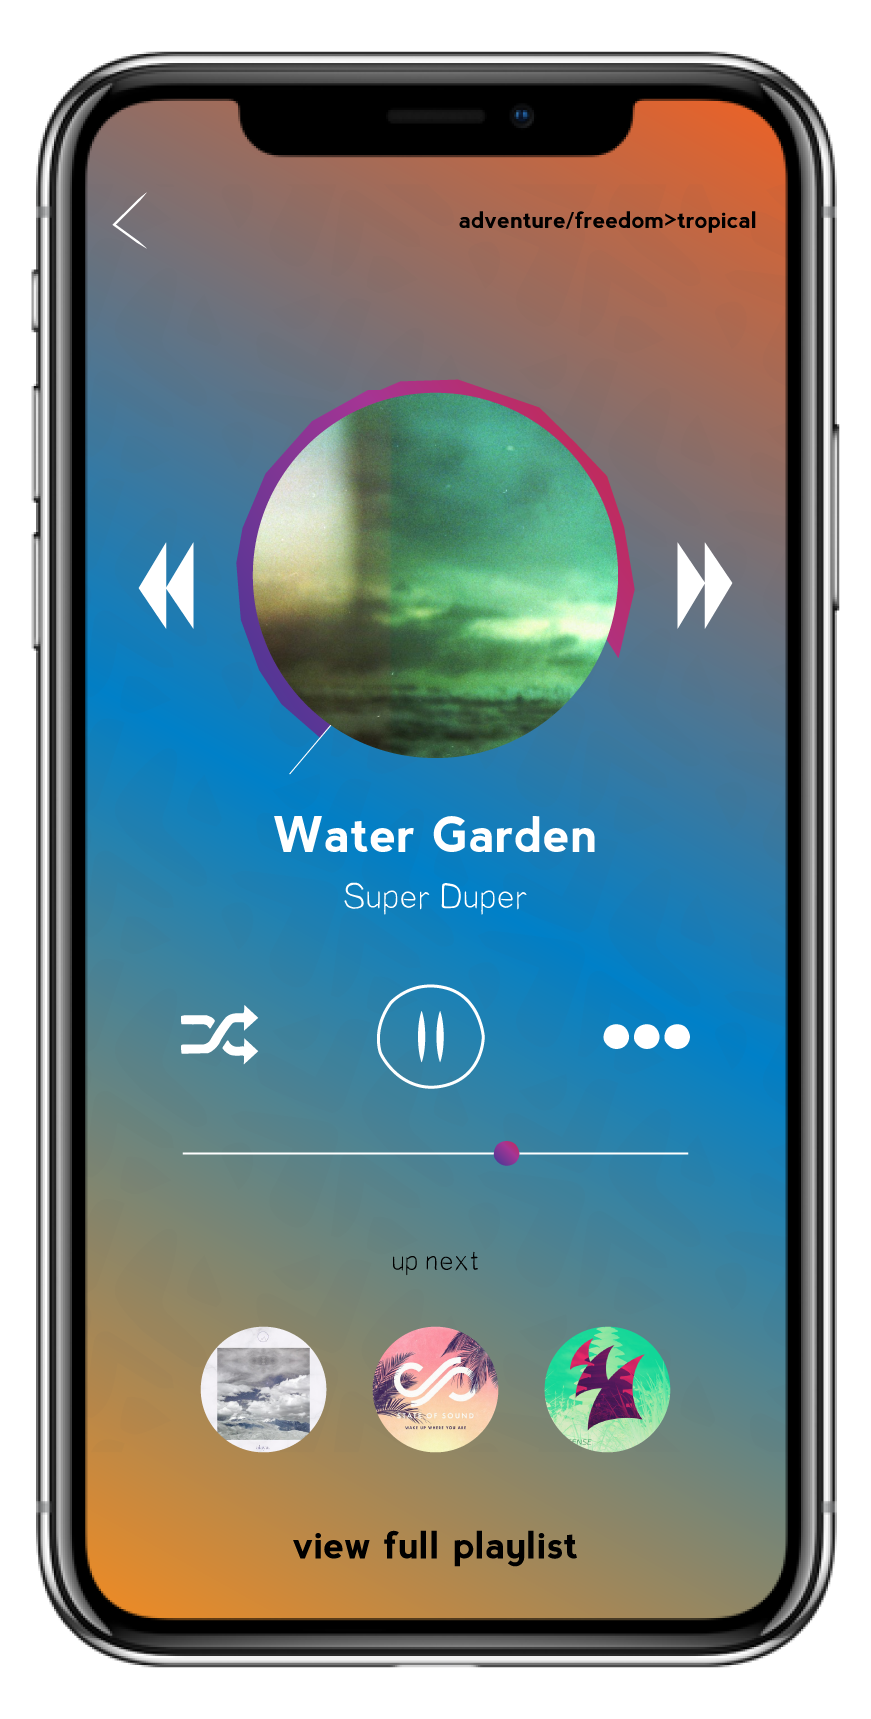 - Simple and easy to use interface with a unique progress bar that circles around the album image.